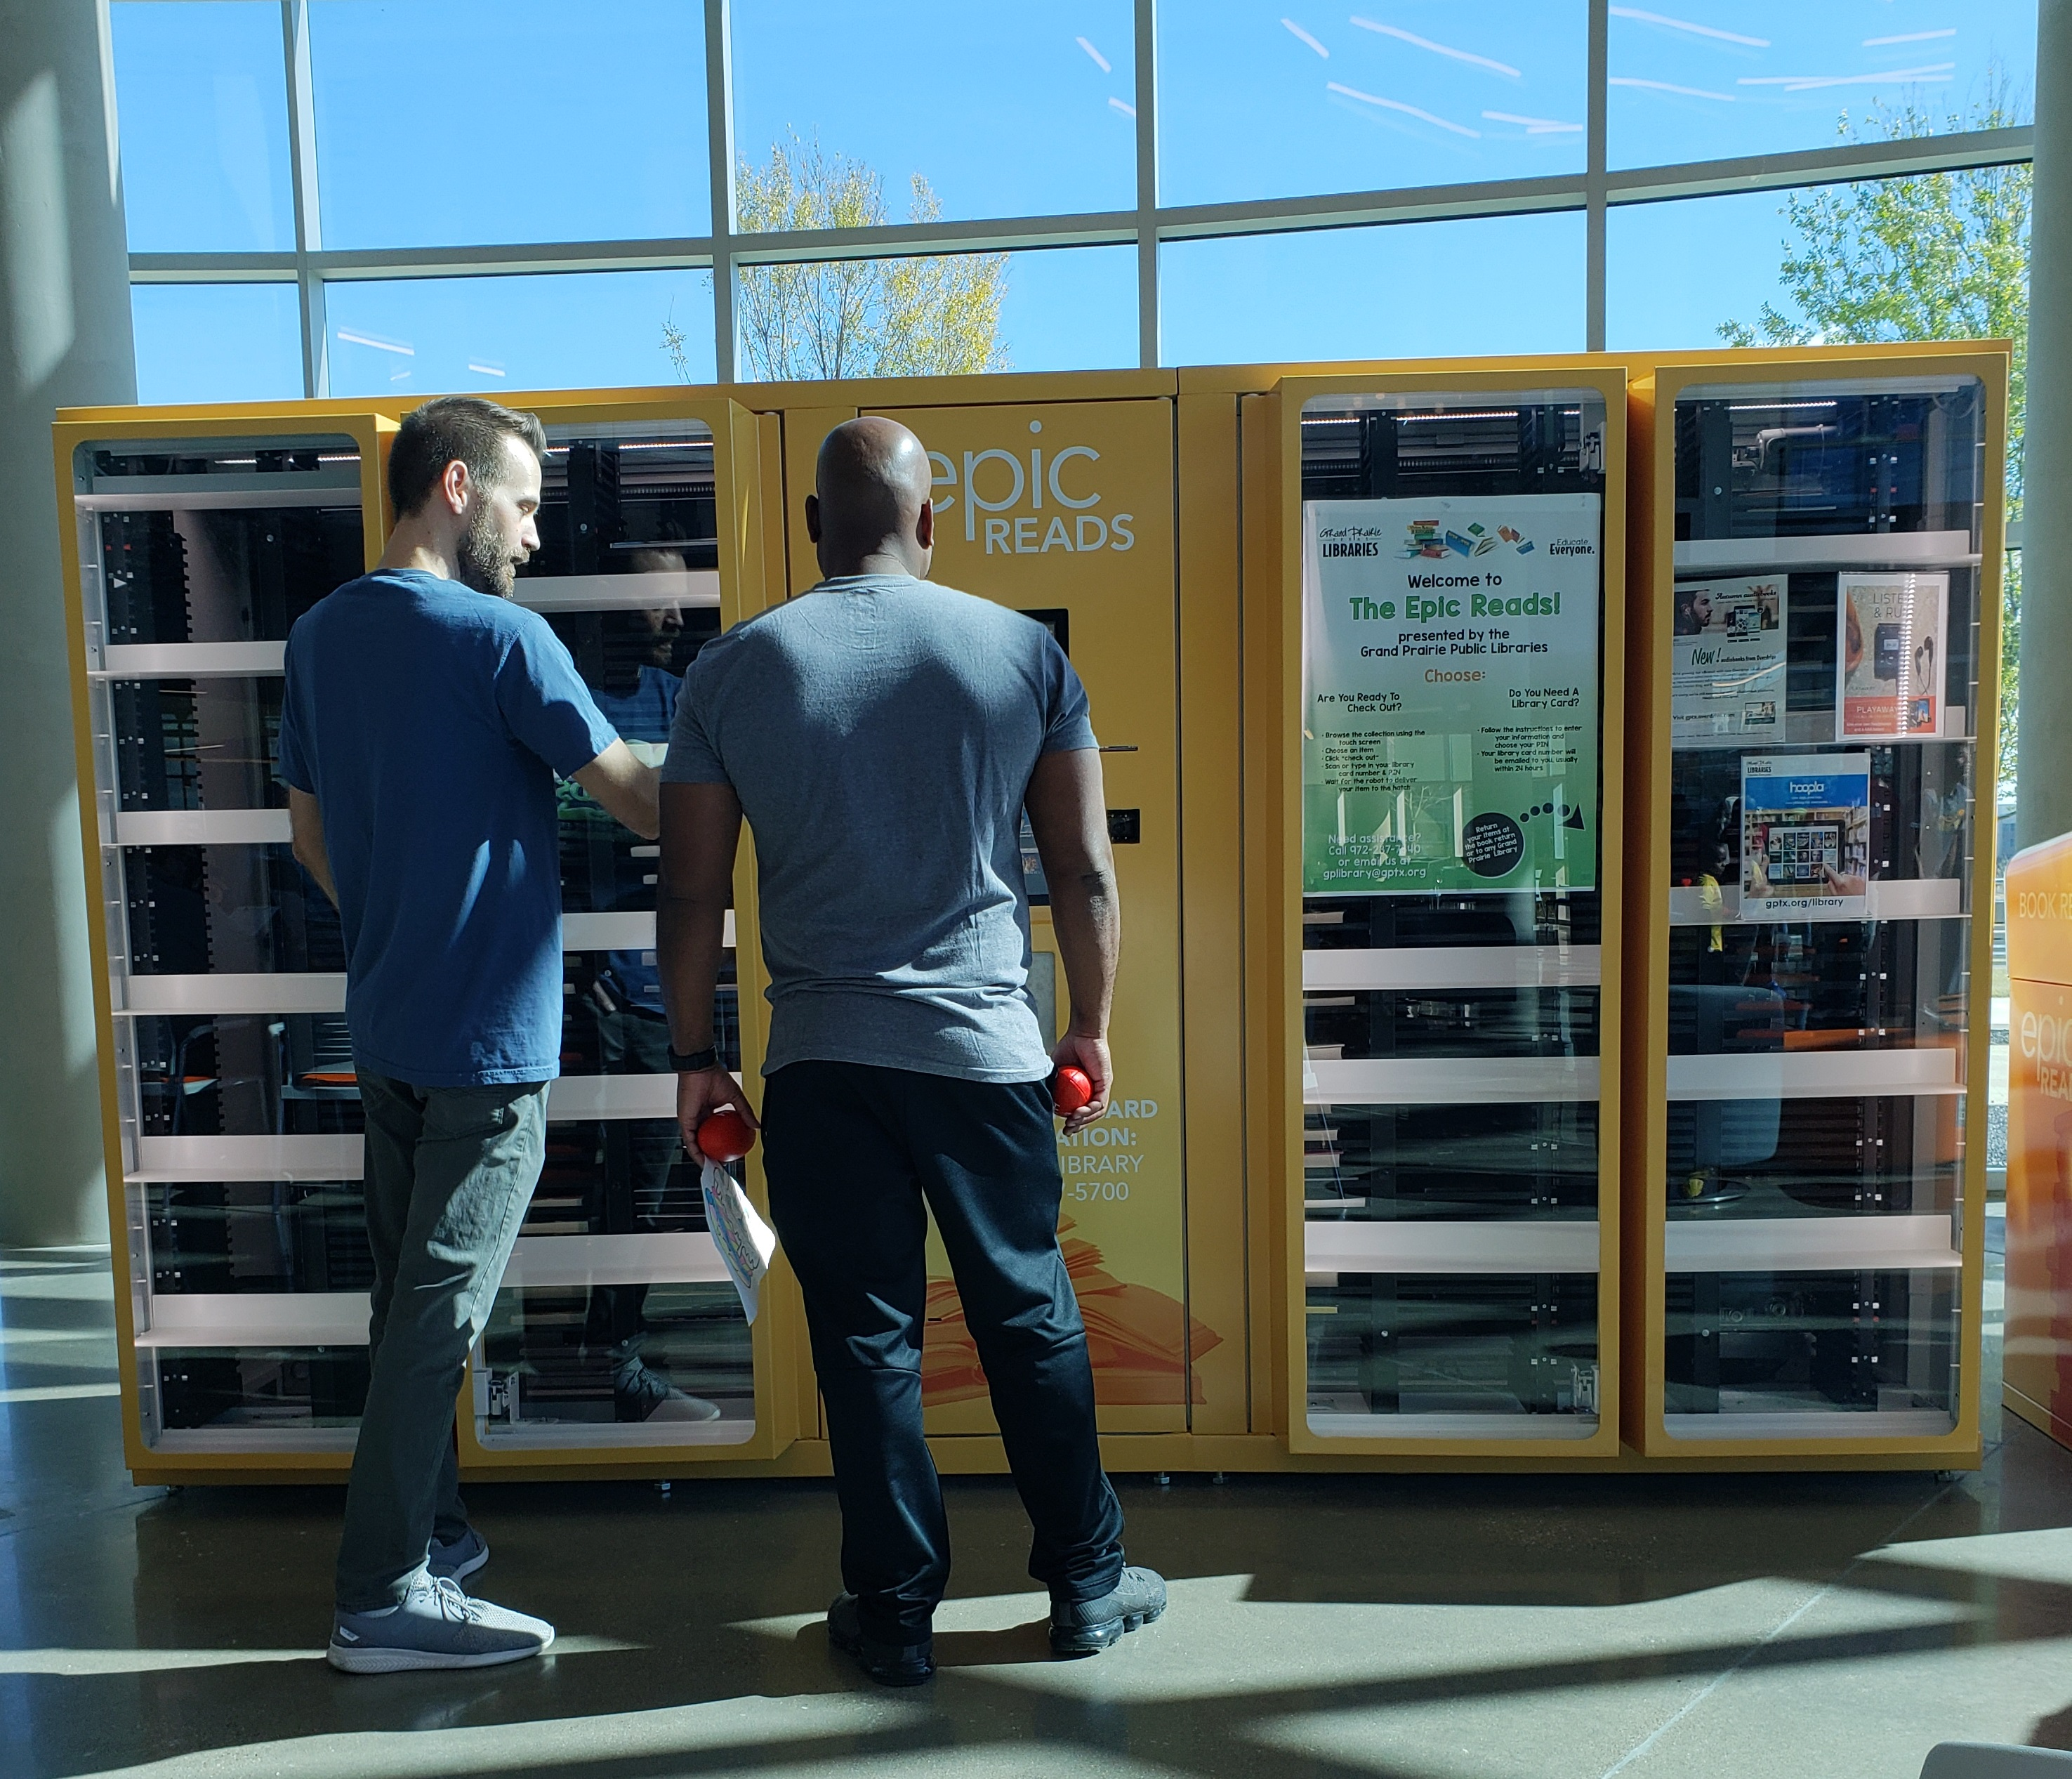 Grand Prairie Launches Vending Library in Epic Rec Center